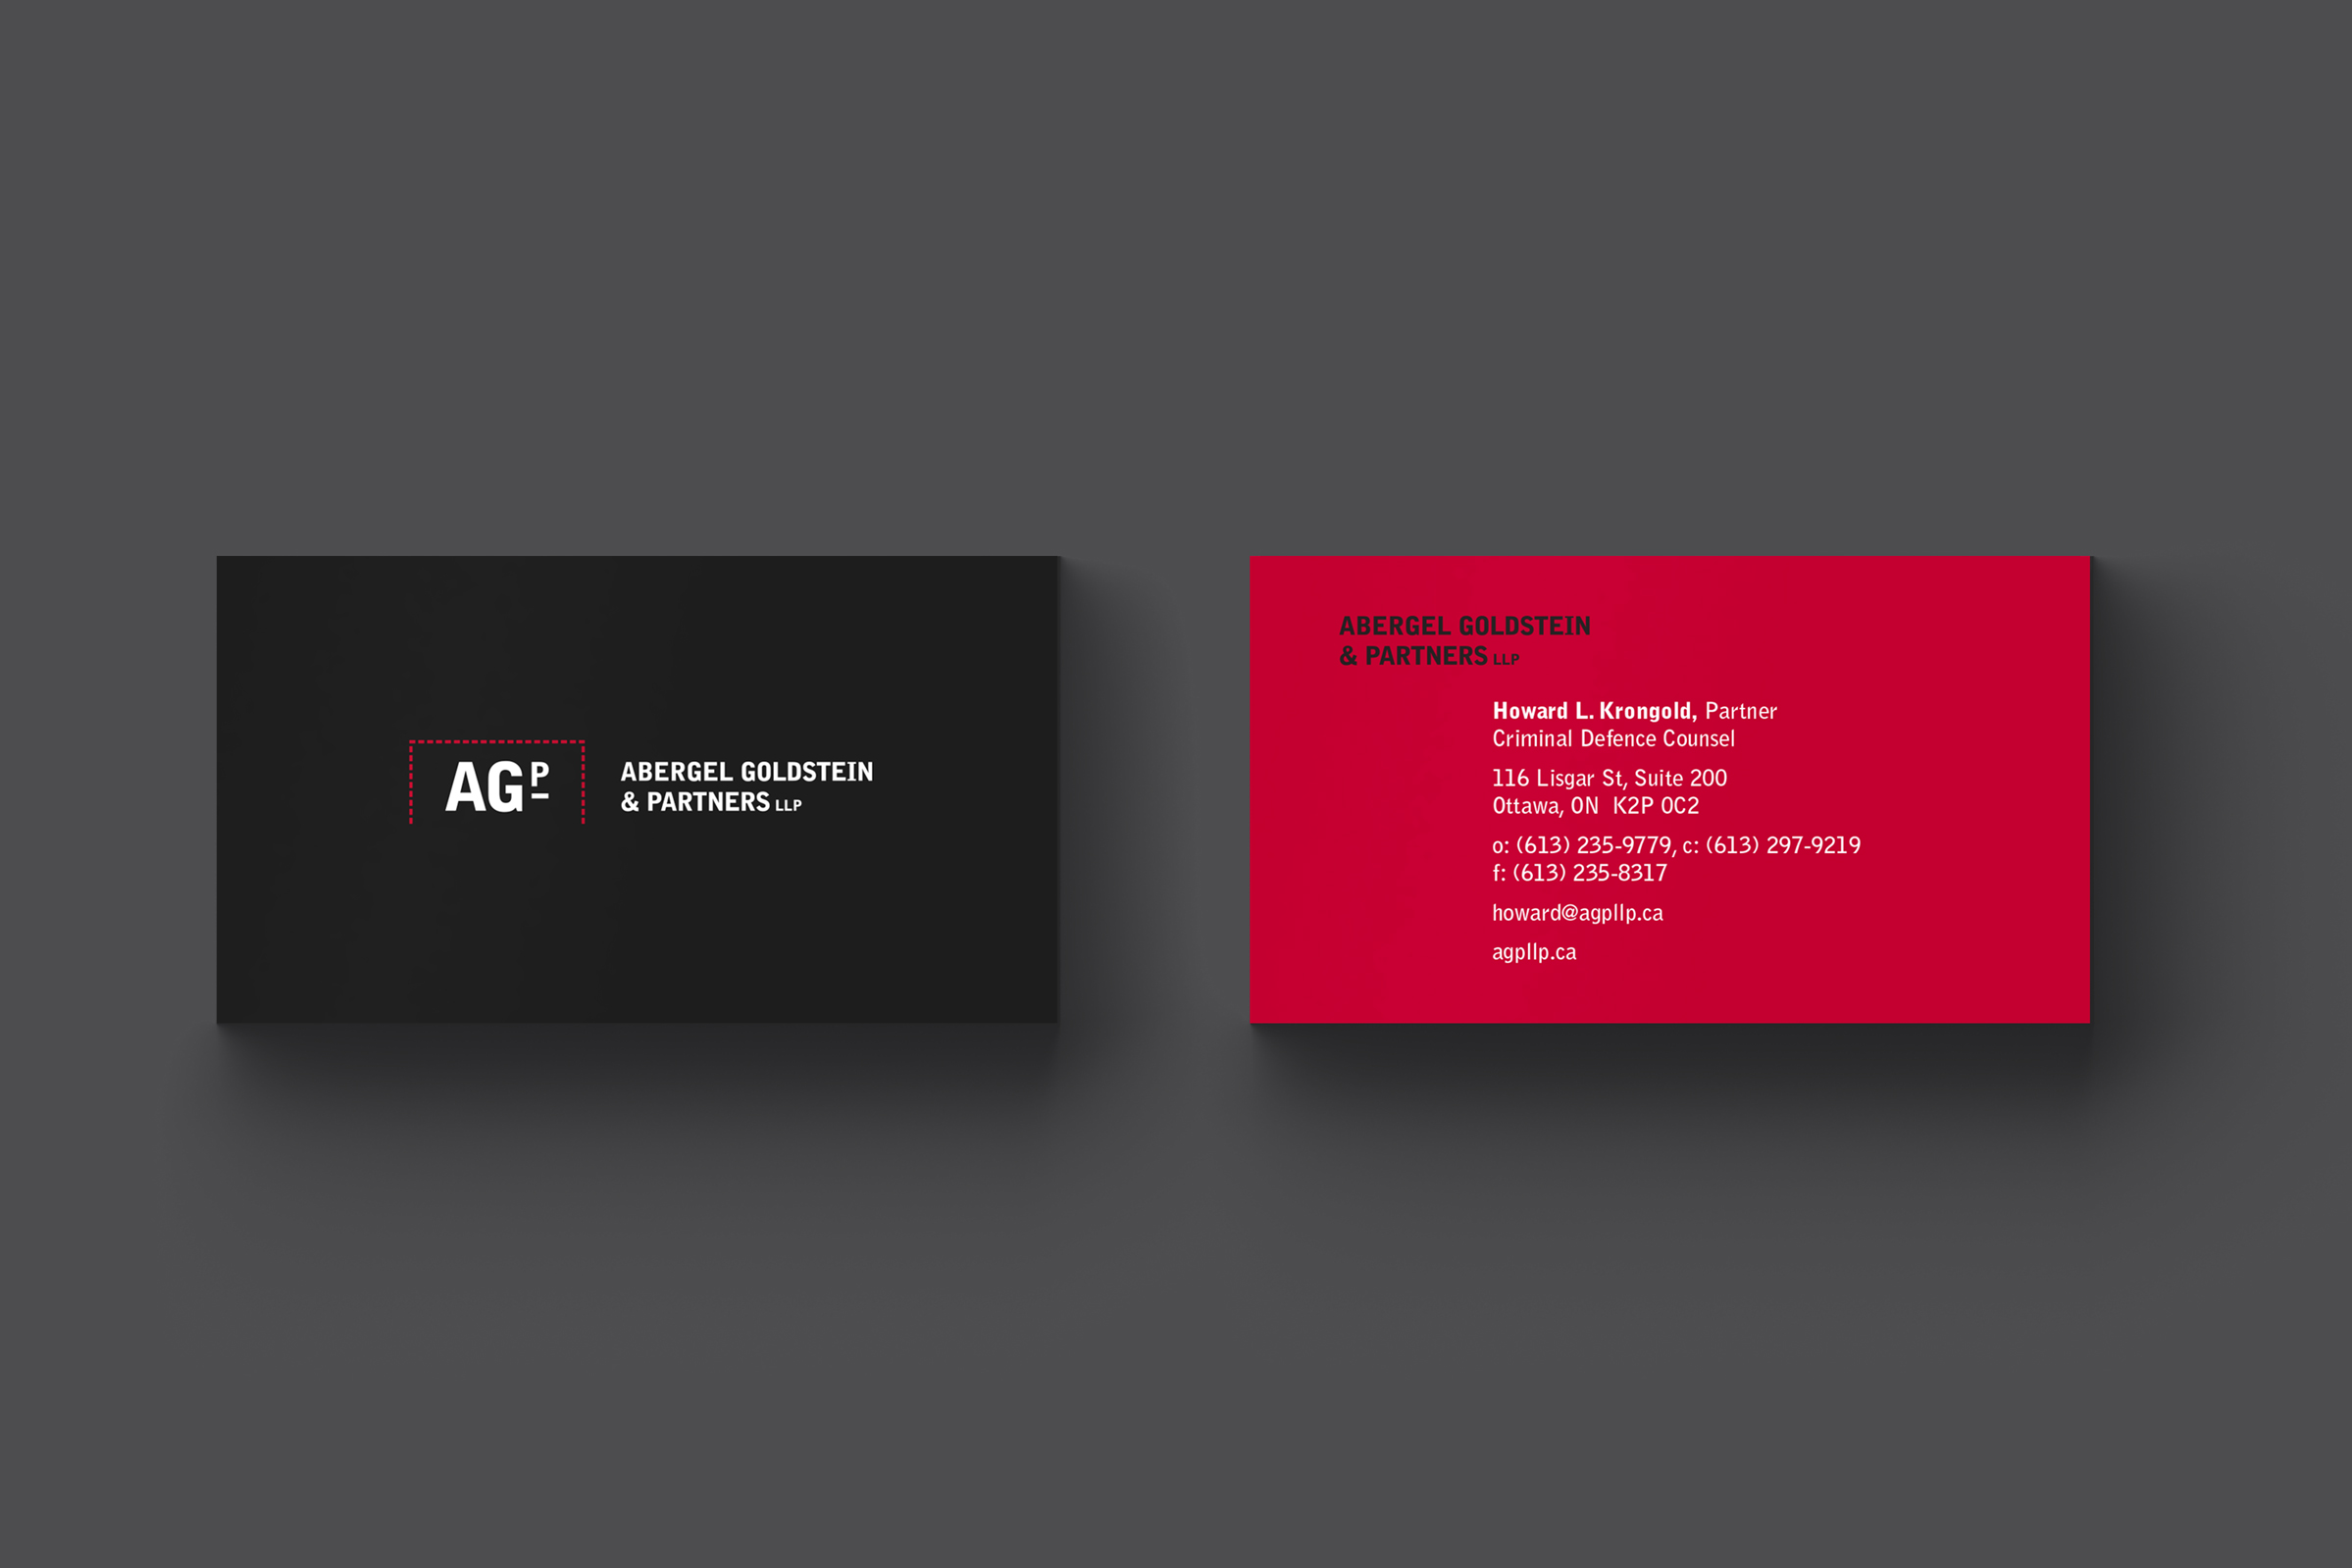 Business Card for Abergel Goldstein & Partners, an Ottawa law firm, by Graphic Designer idApostle